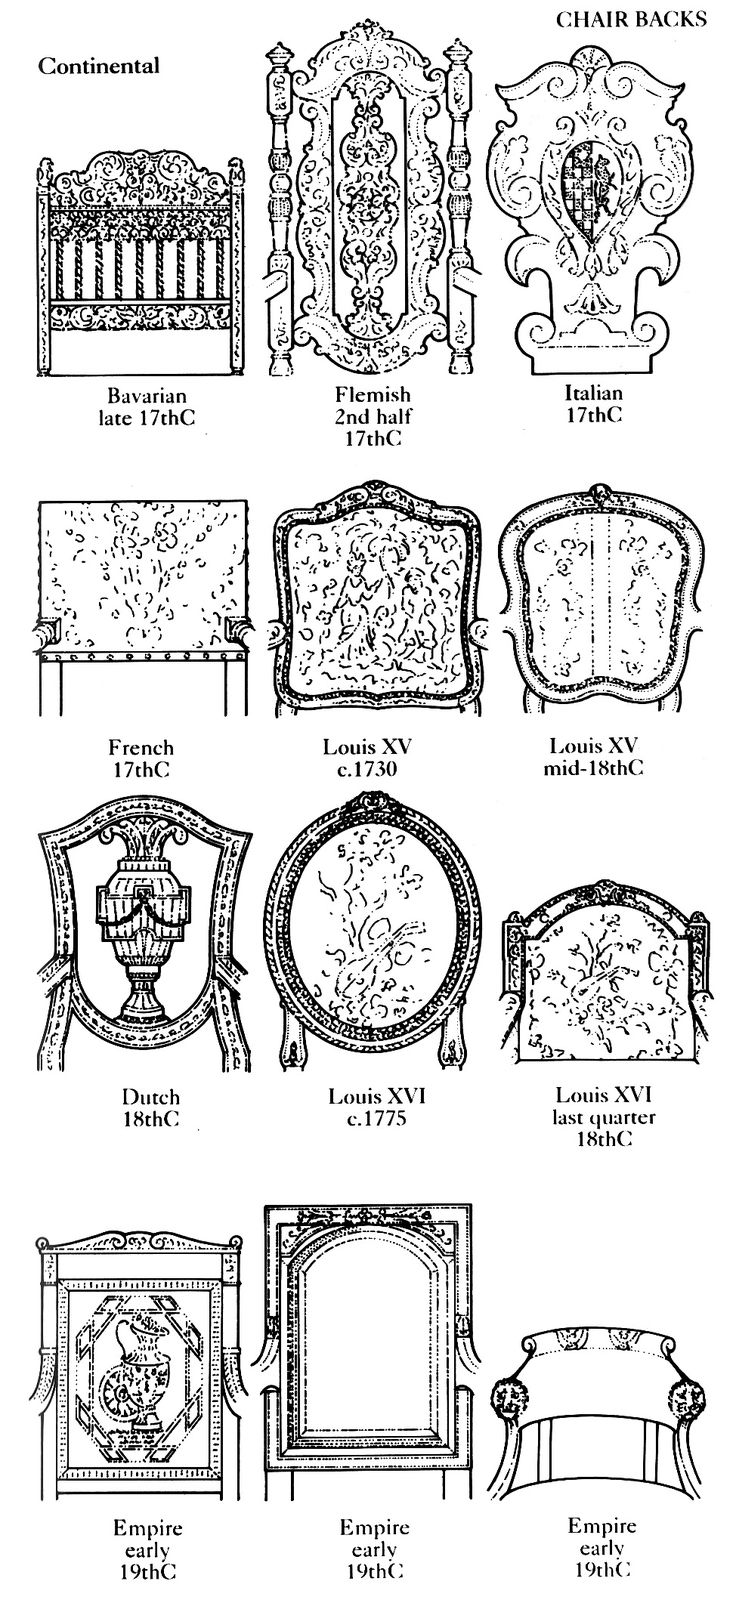 Chair antique queen anne chair the buzz on antiques antique chairs 101 - Diagram Of Continental Chair Backs Late 17th Century To Early 19th Century French Furnitureantique